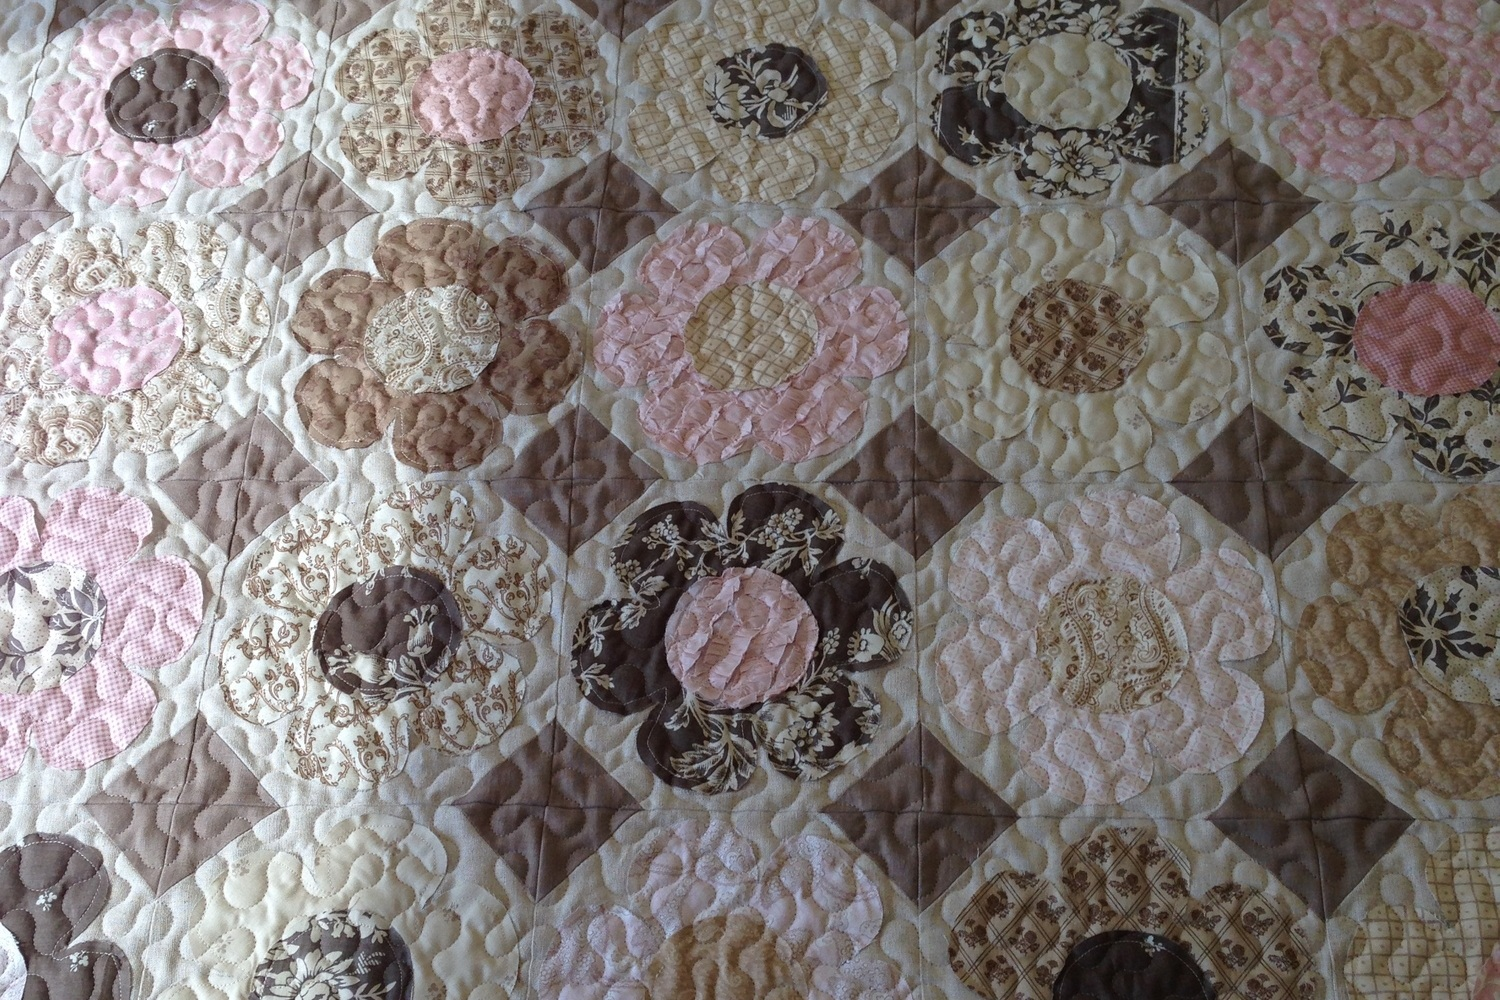 Meander - Our basic meandering pattern adds just the right amount of texture and looks great on most quilts.Default size is 2 cents per square inch (LxWx$.02)X-Large size is 1.5 cents per square inch (LxWx$.015)